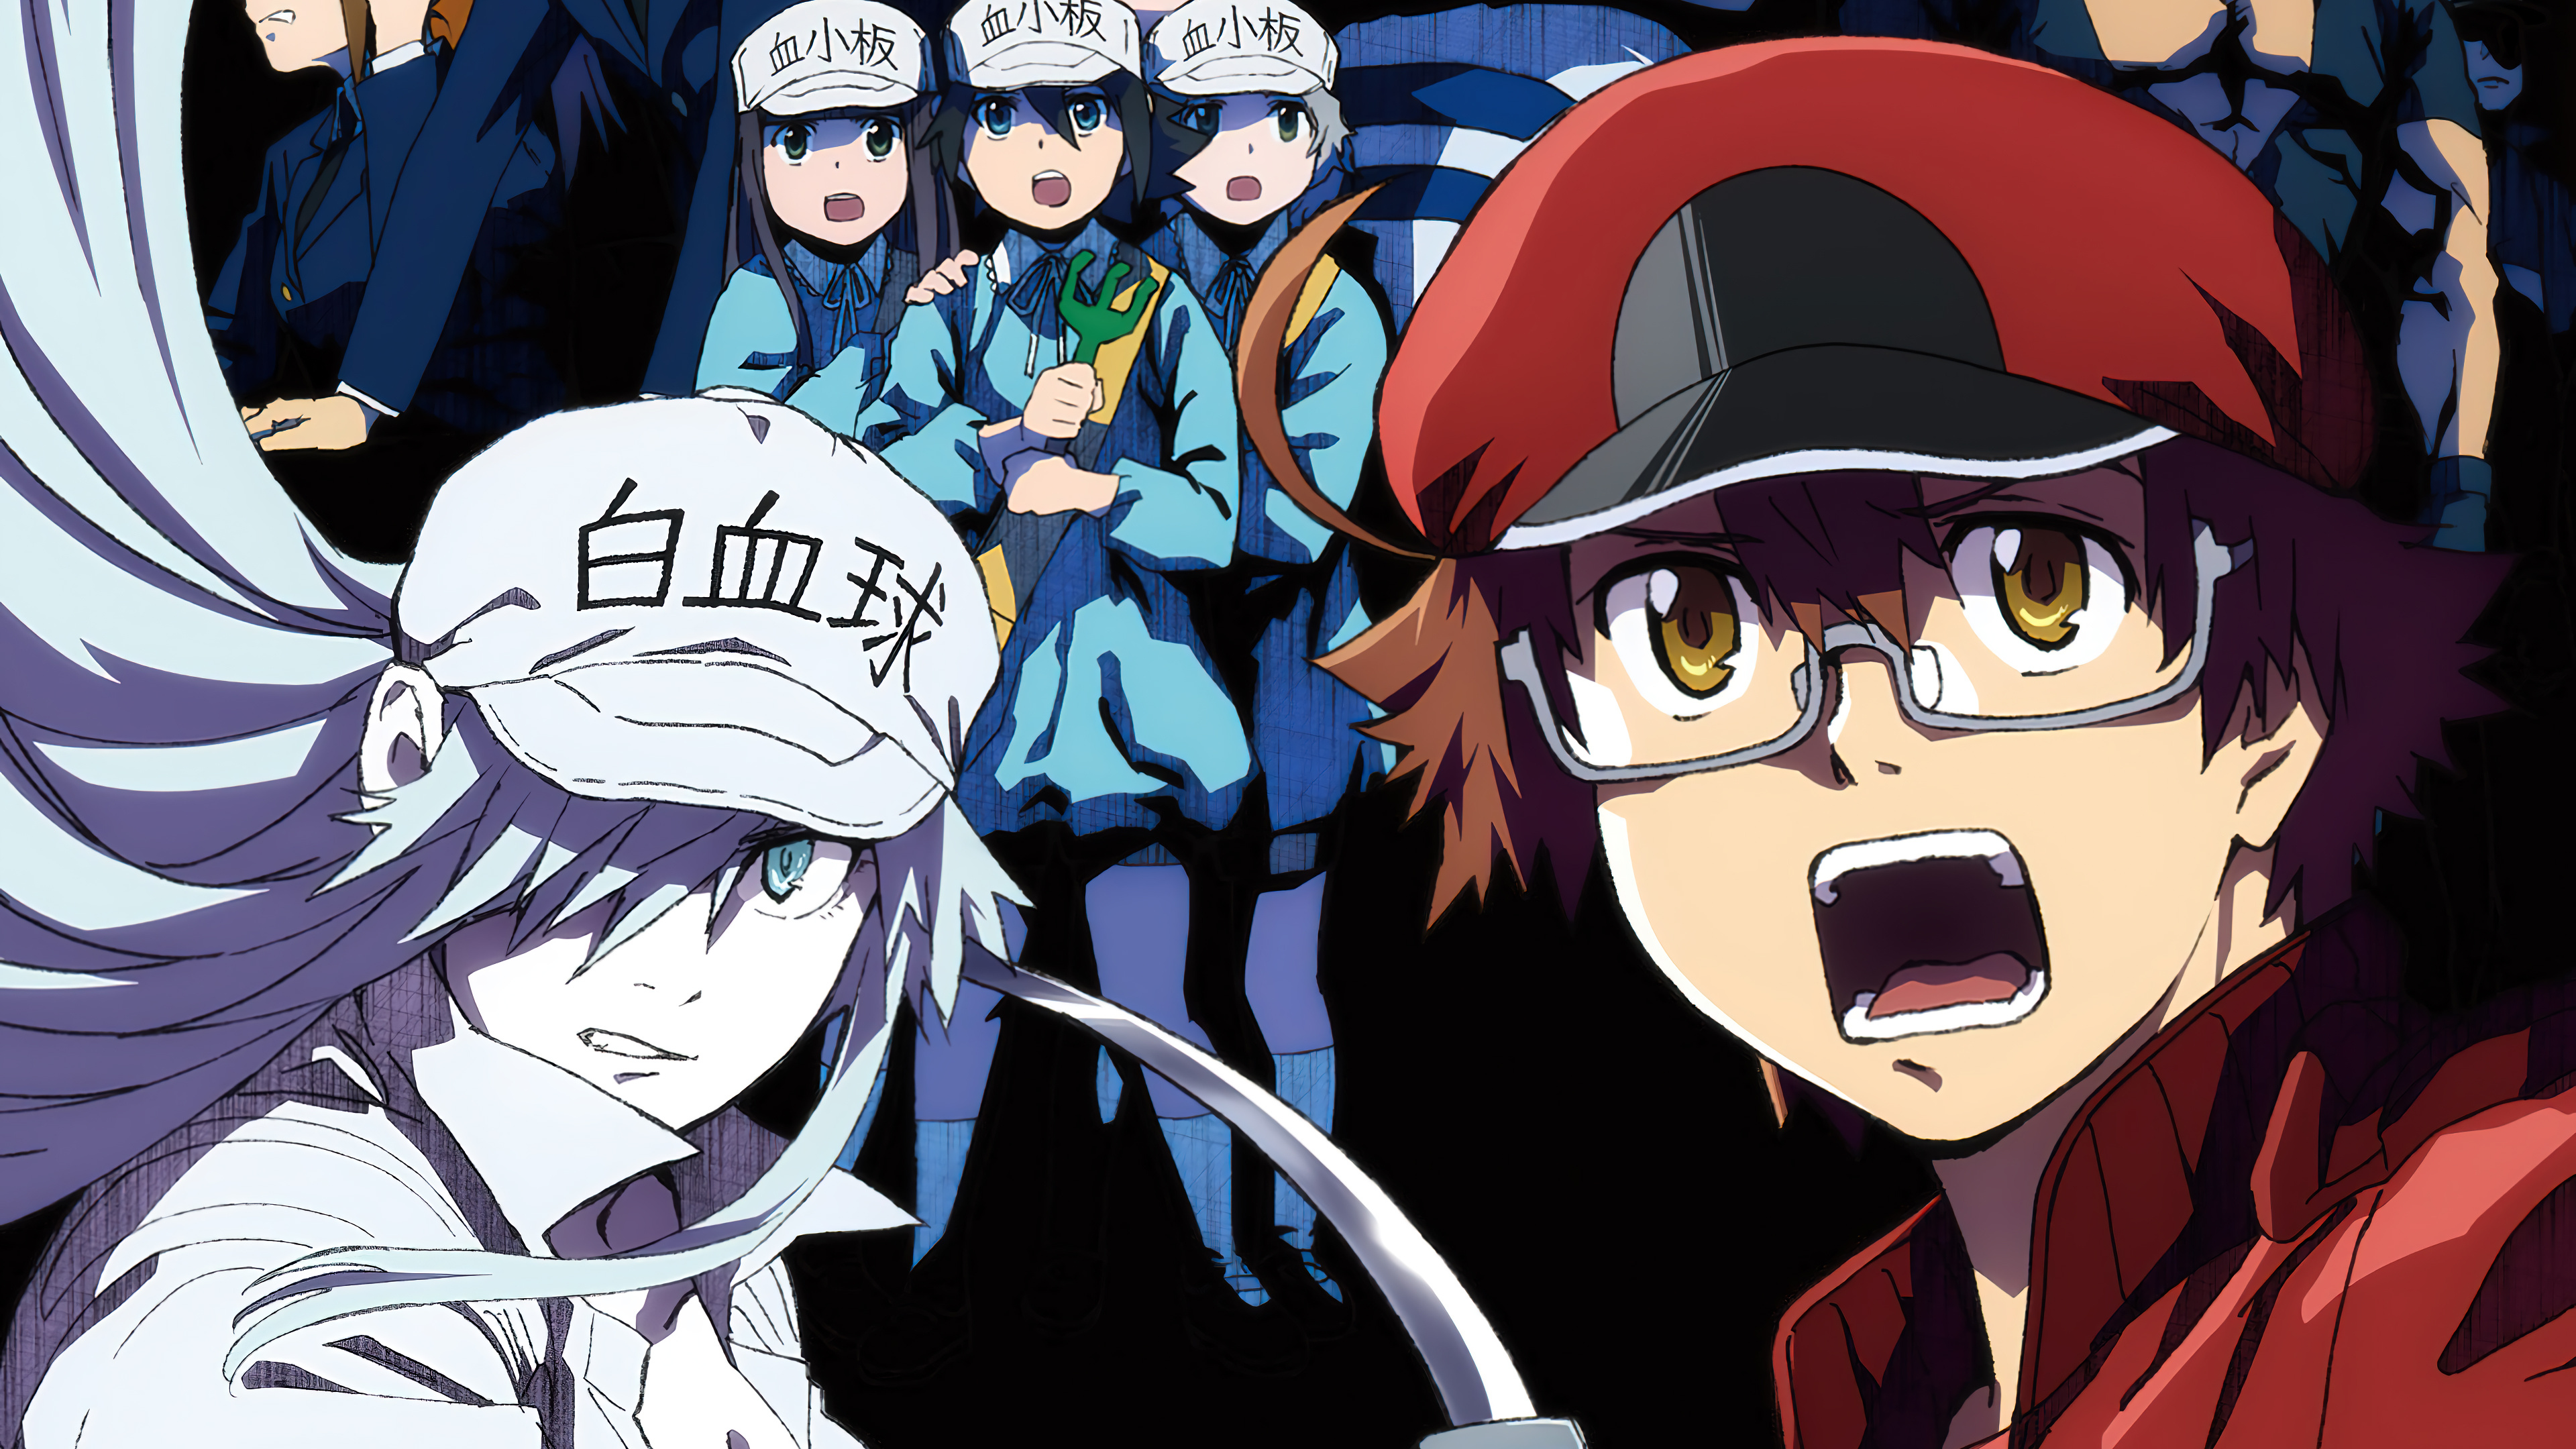 Anime Wallpaper Characters from Cells at work: Code Black